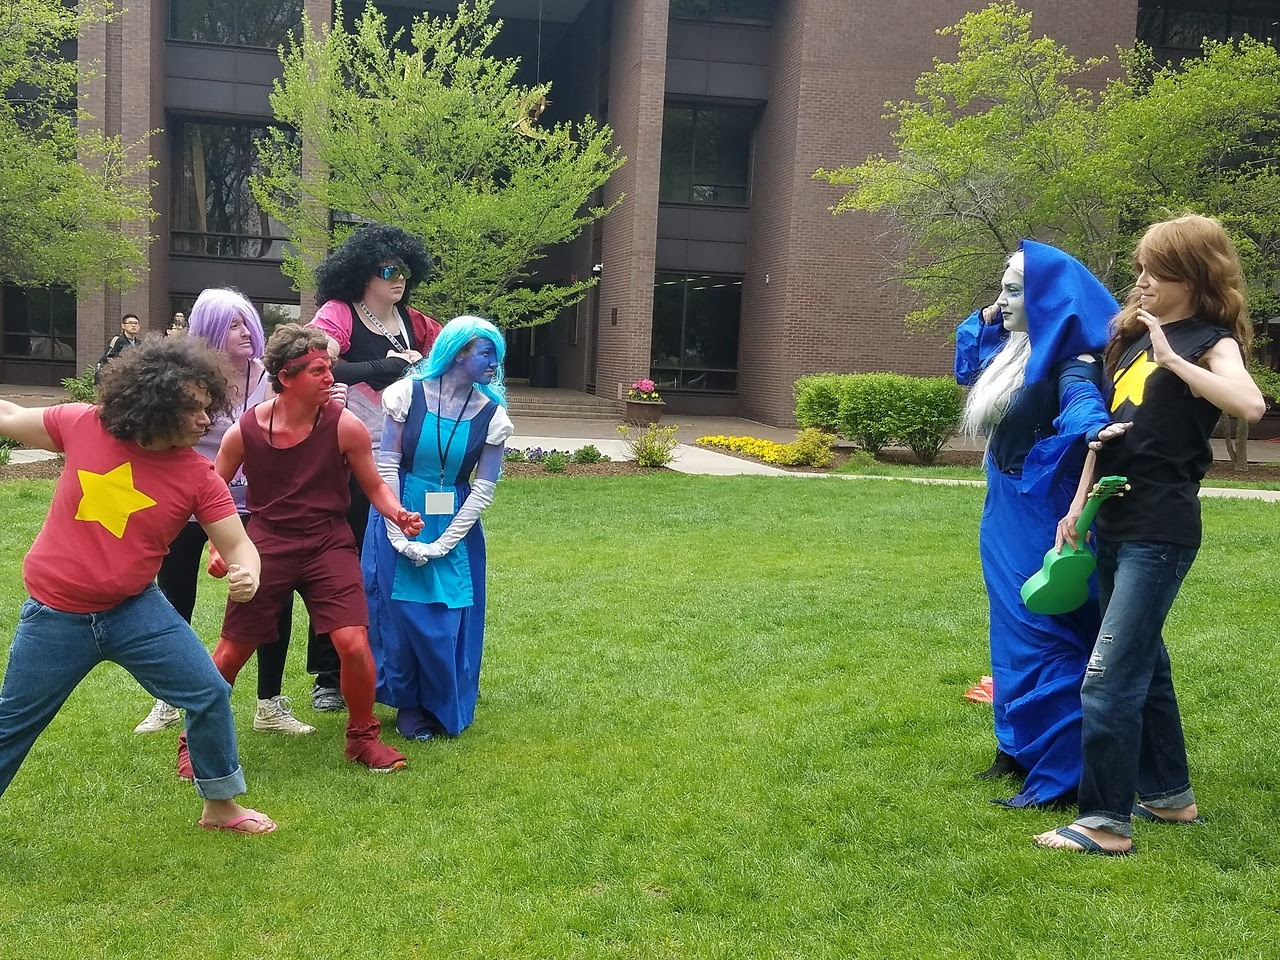 Steven Universe Photoshoot at Castle Point Anime Convention at Stevens Institute of Technology, aka Steven Univers-ity Lemme know if you're one of these cosplayers! I was the Greg without glasses Greg...